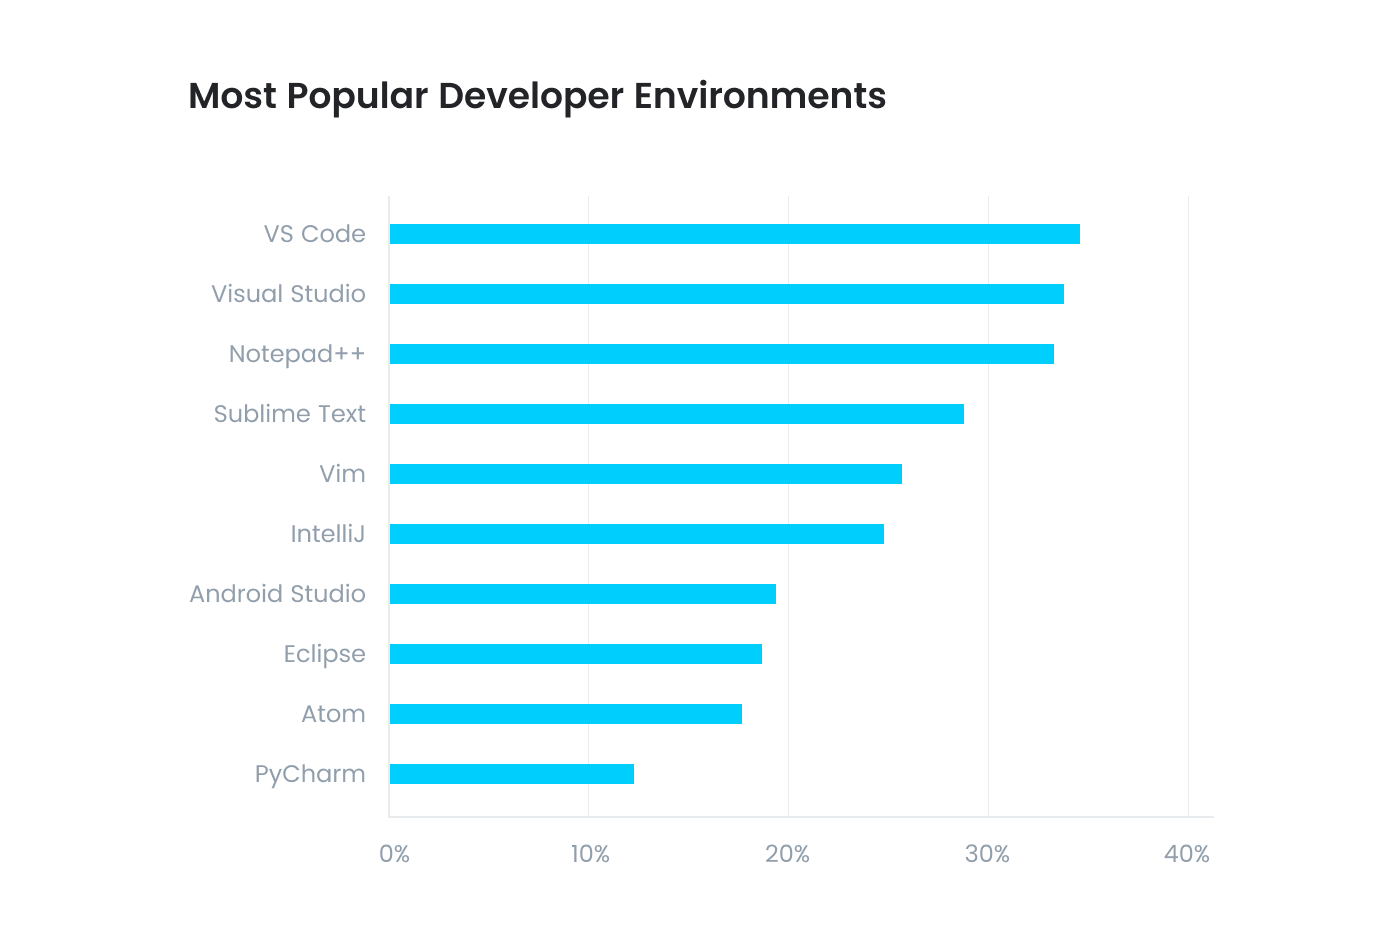 most popular developer environments and code editors according to Stack Overflow's 2018 Developer Survey